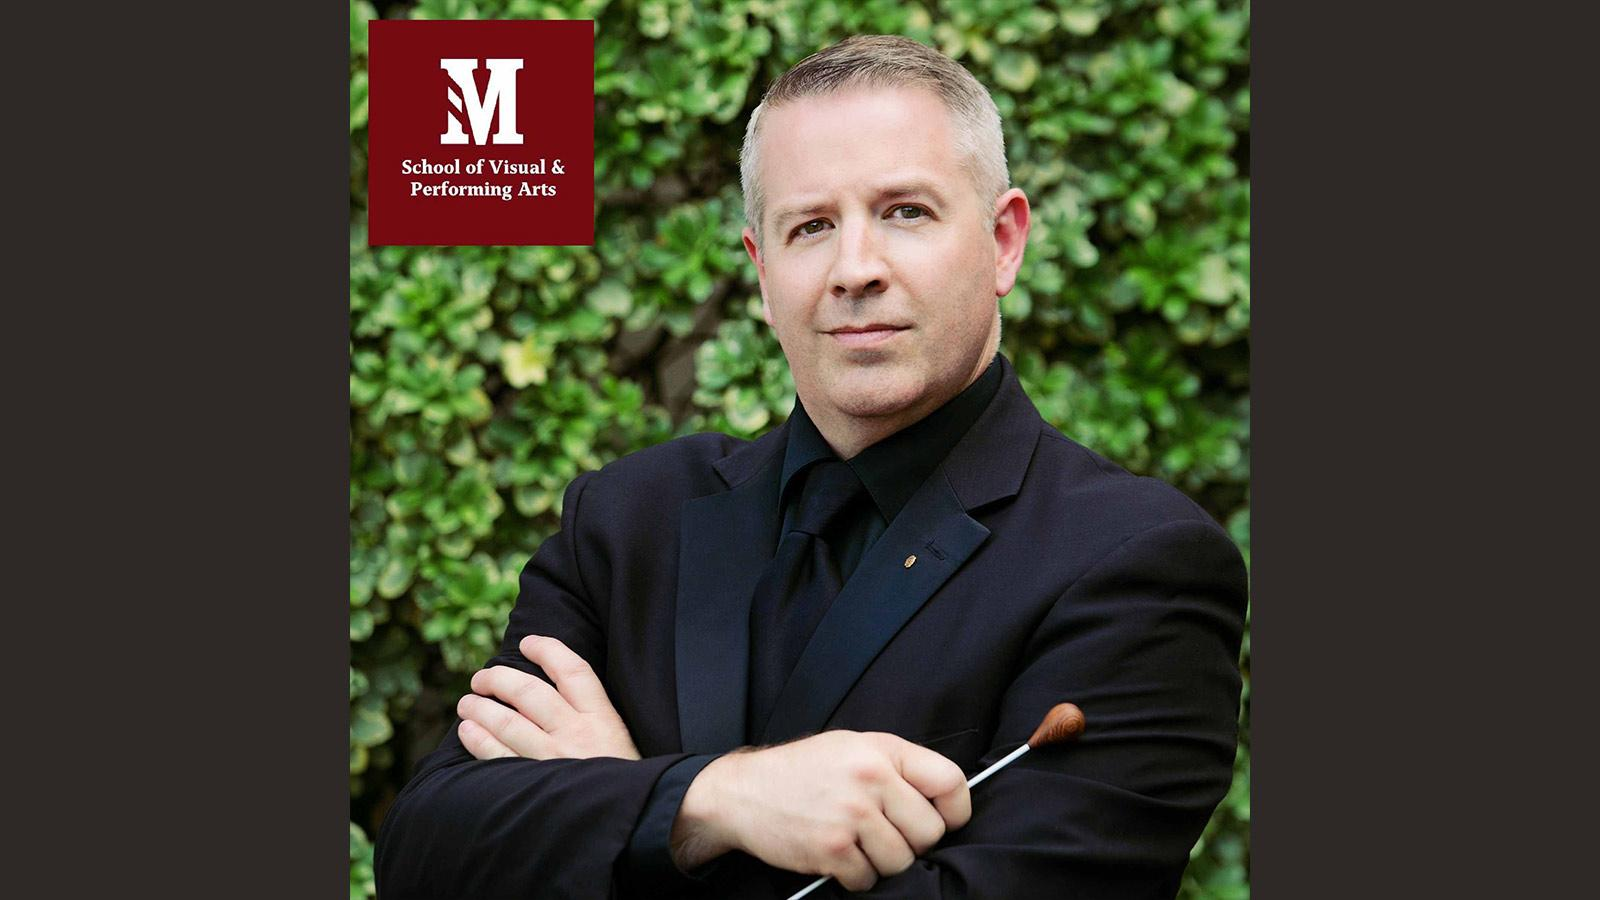 Martin Gaines' headshot for his announcement as the director of bands at Morningside in fall 2021.